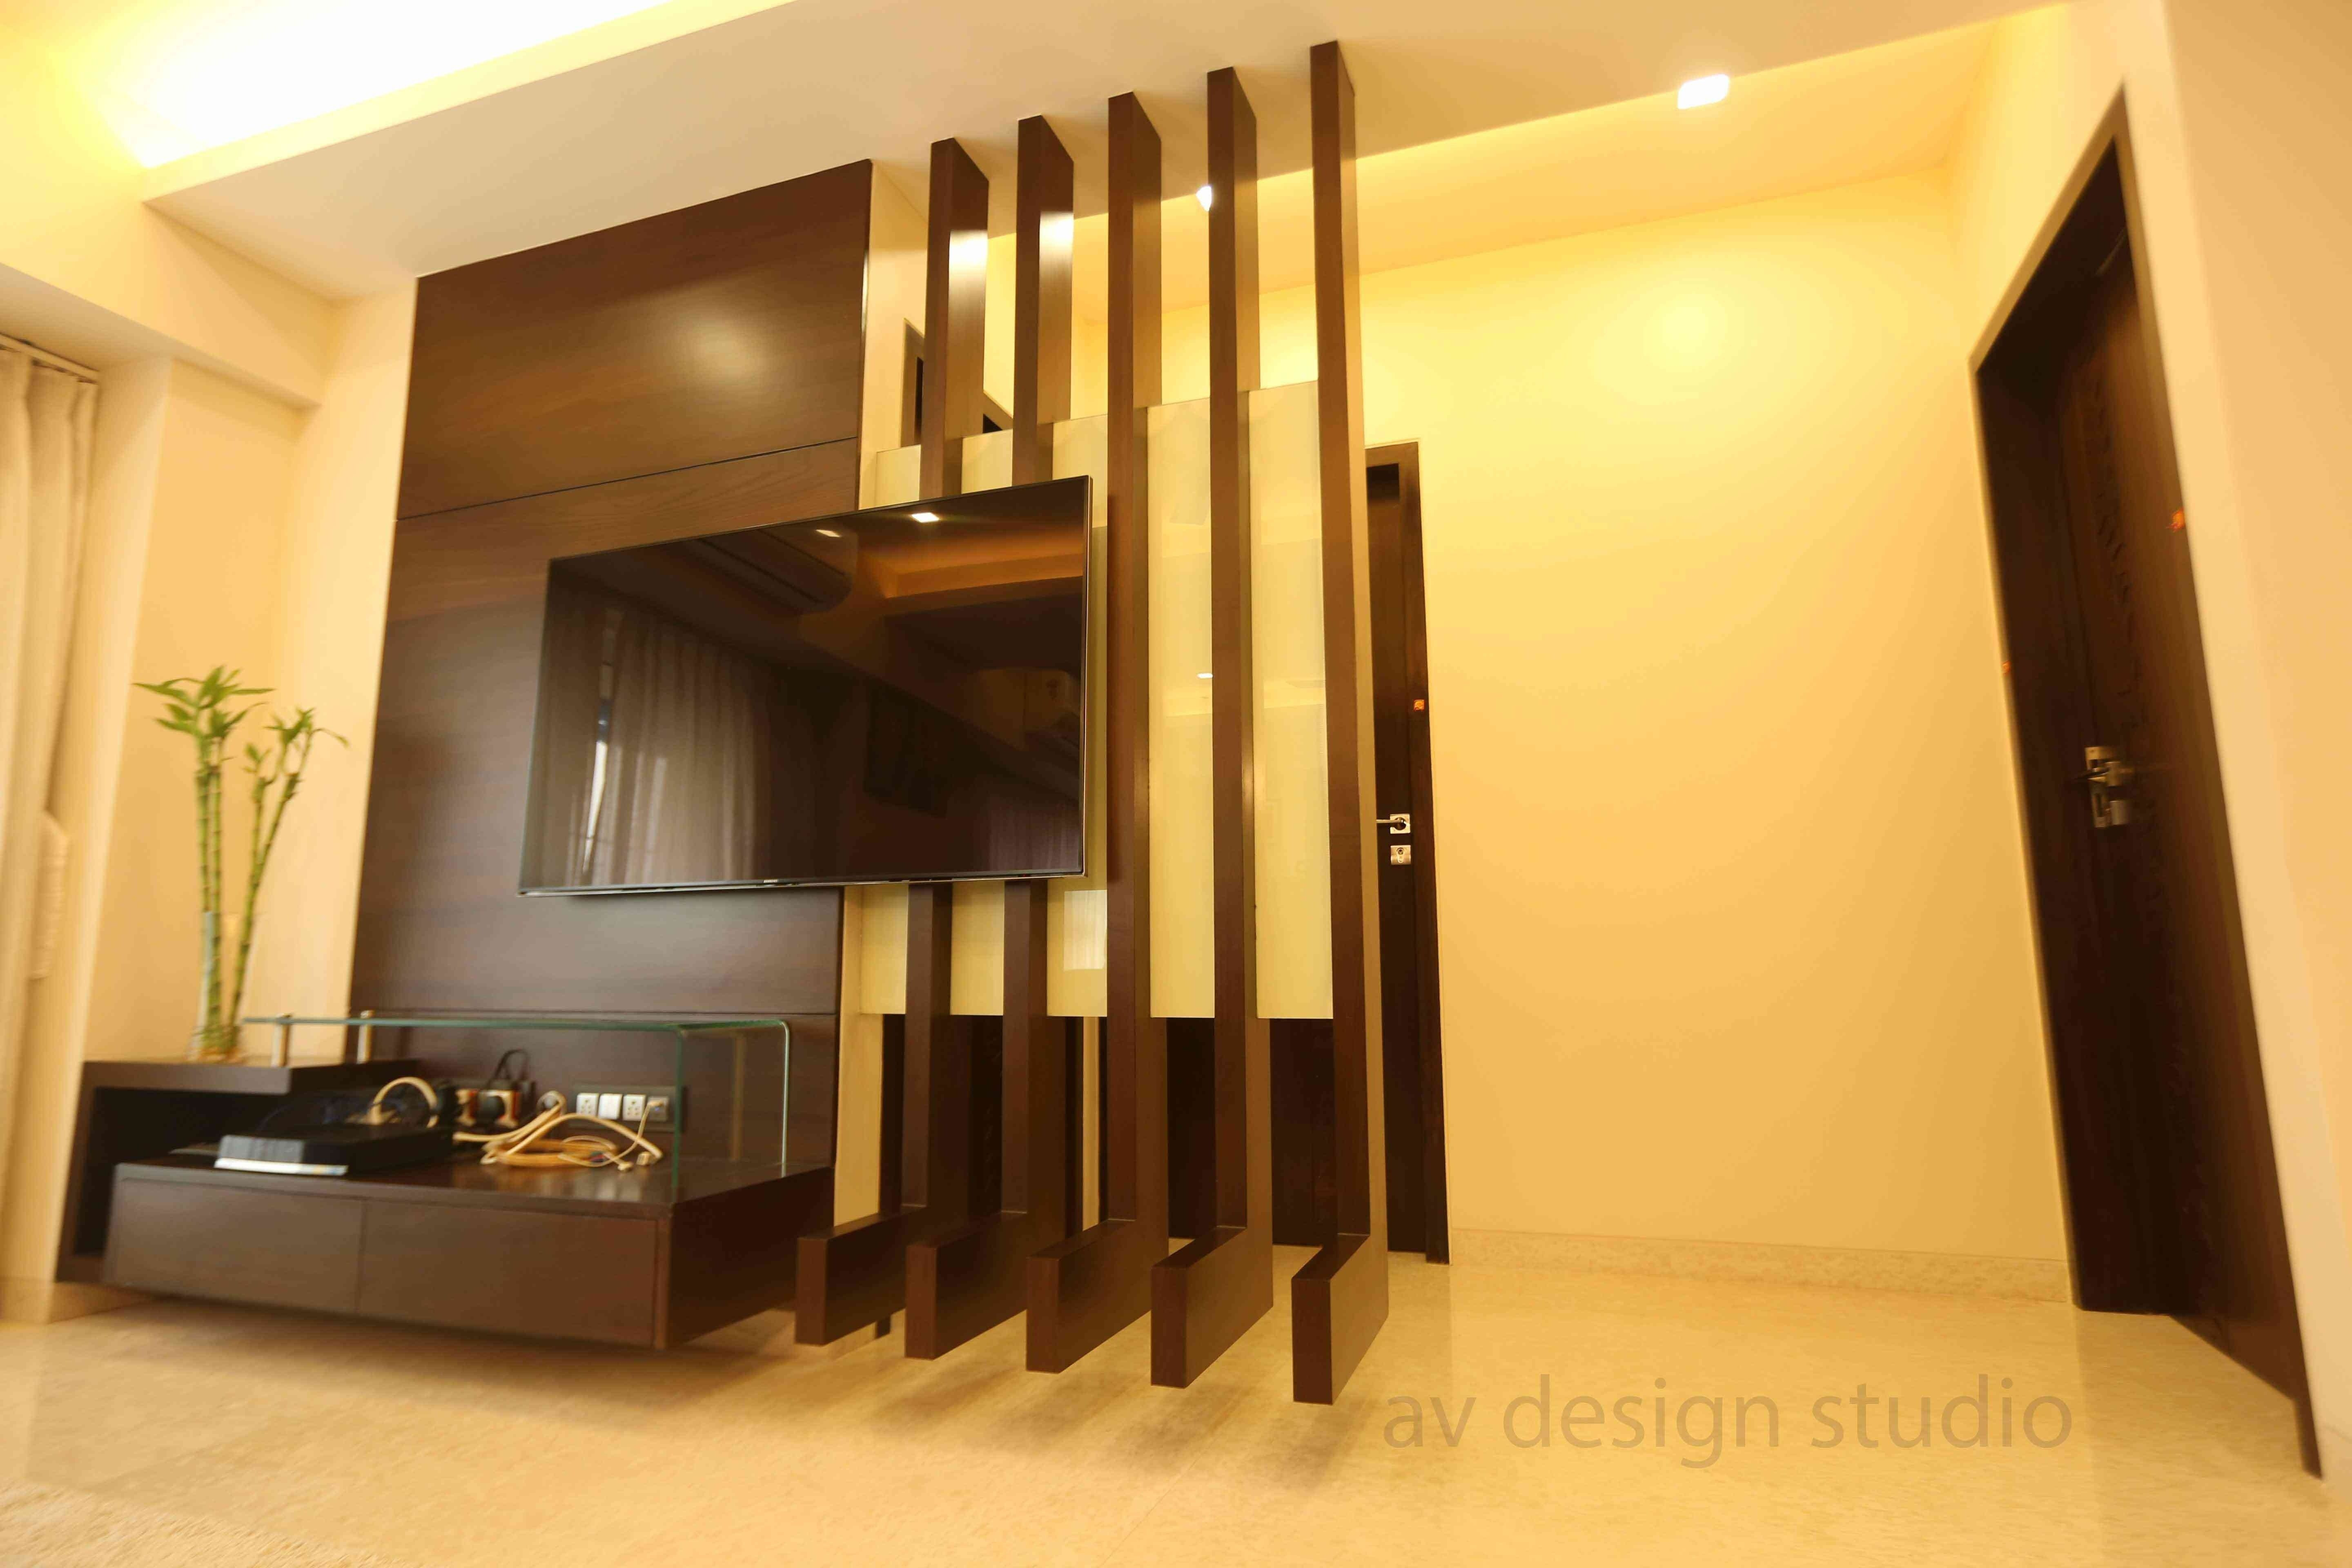 22 Luxury Wooden Cabinet Designs For Dining Room In 2020 Wall Partition Design Room Partition Designs Partition Design #wooden #cabinet #design #for #living #room